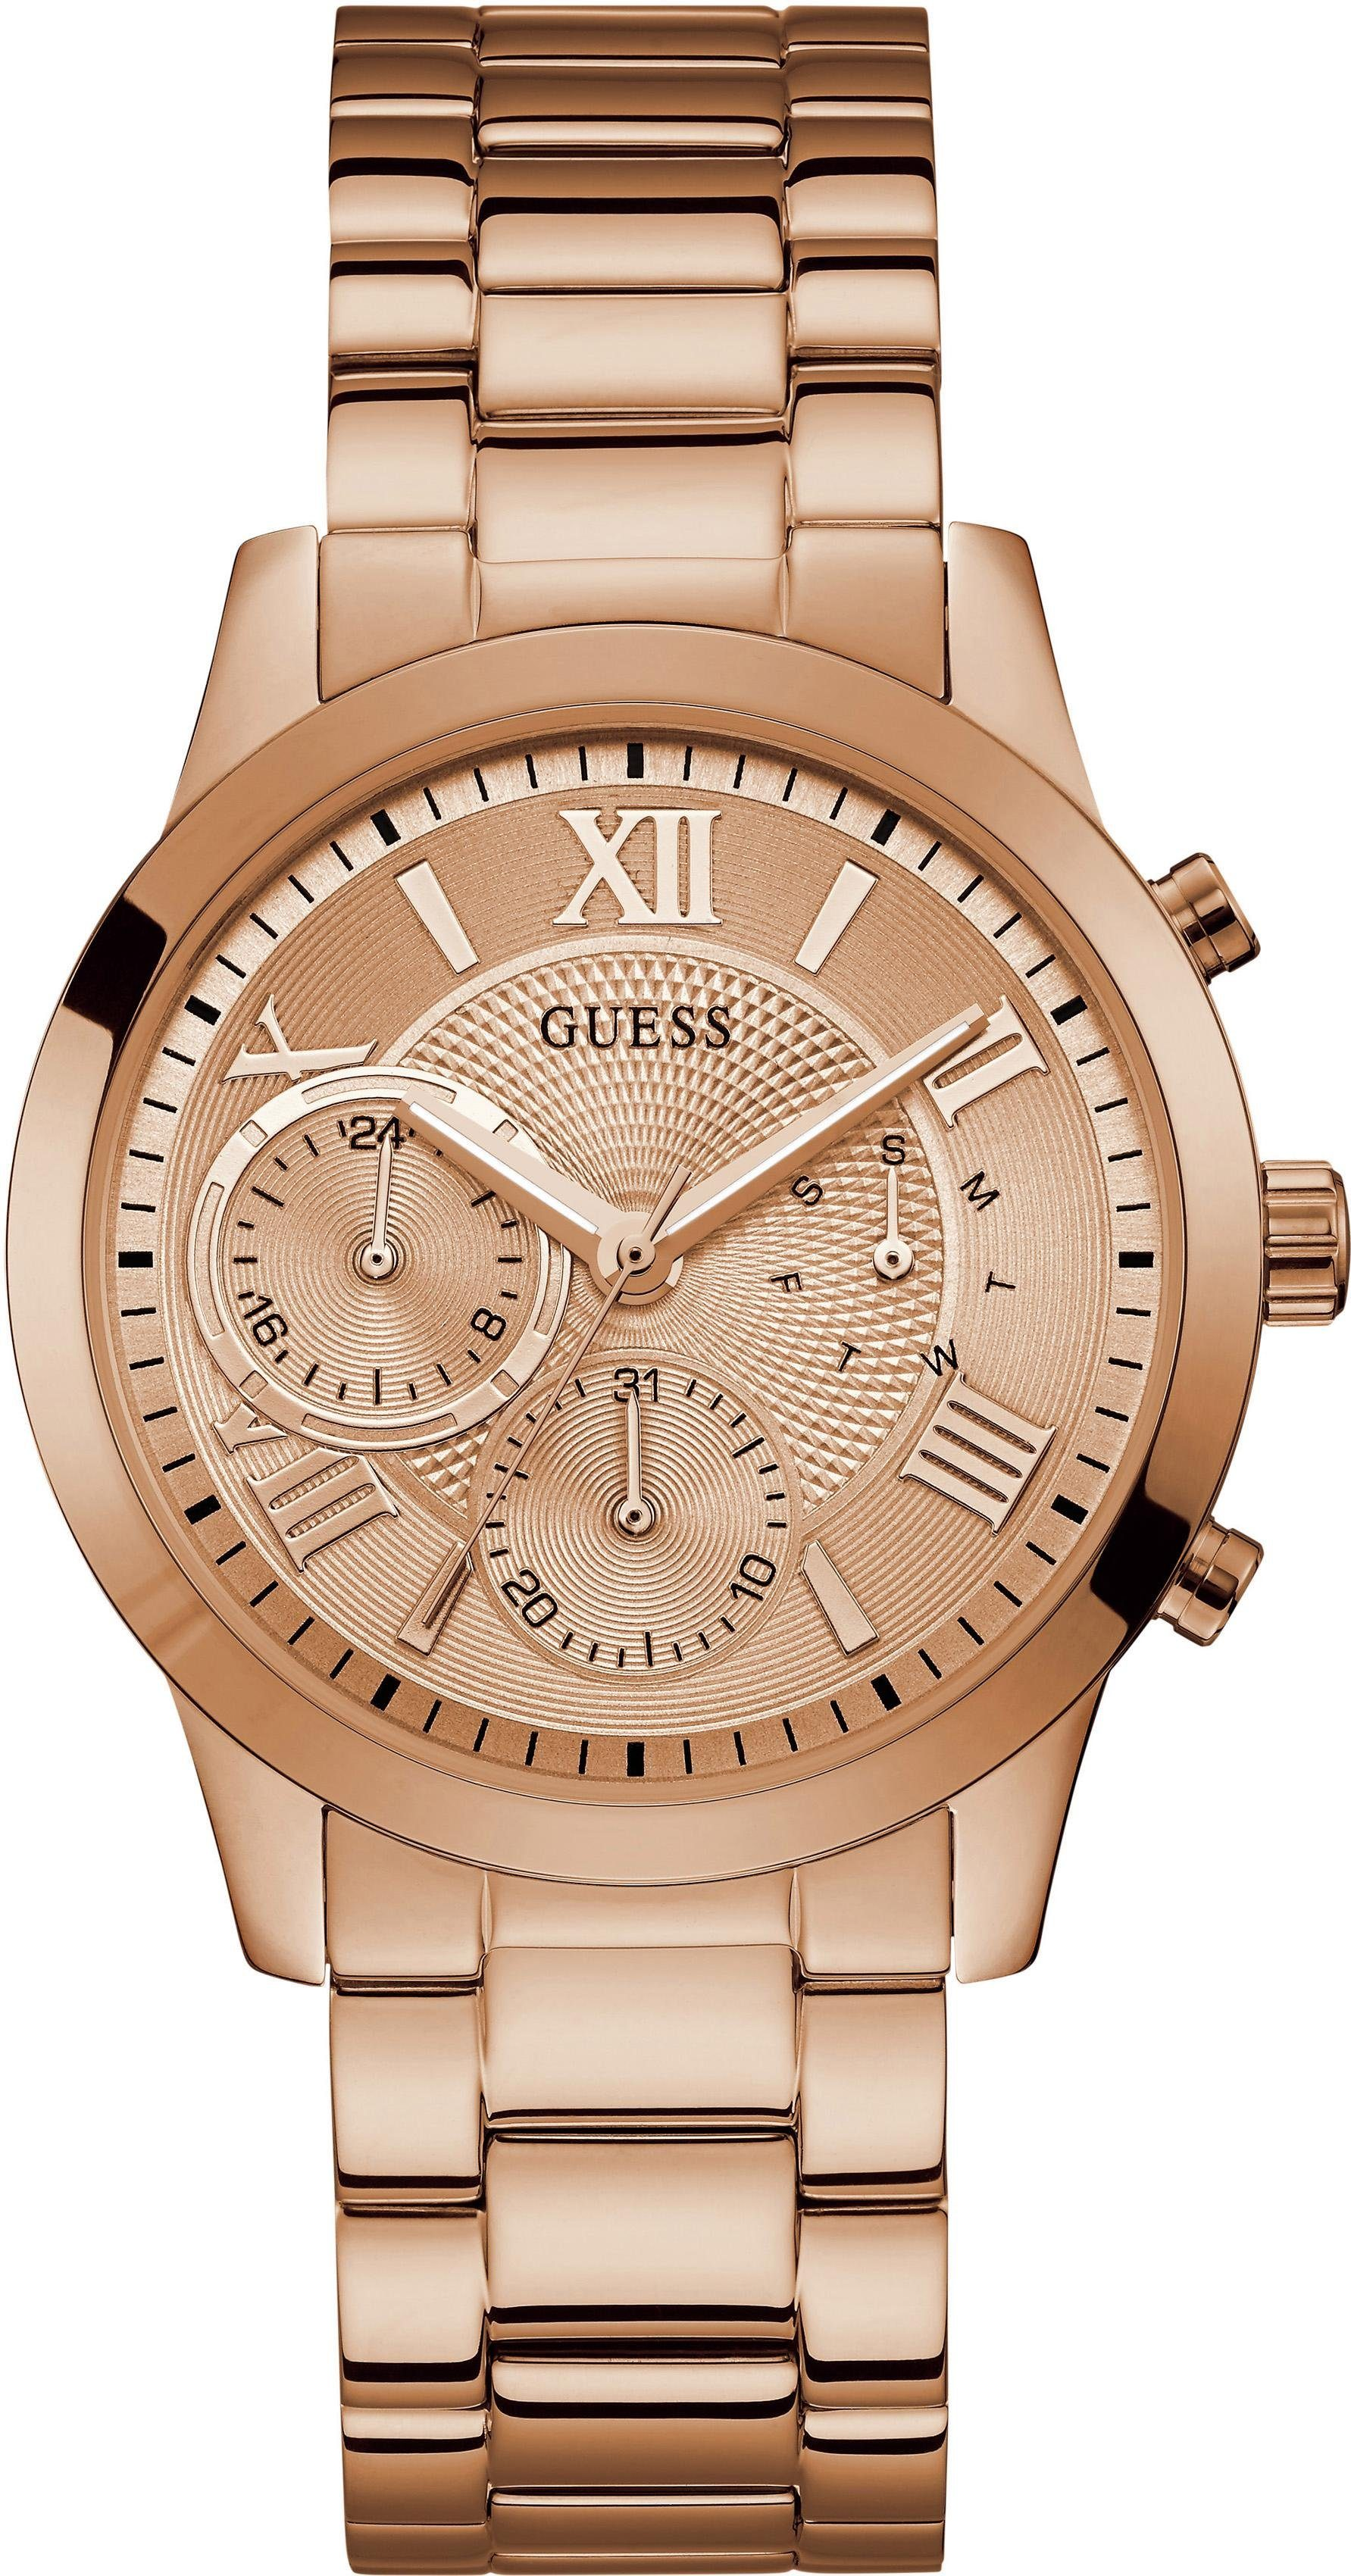 Guess Multifunktionsuhr »SOLAR, W1070L3«